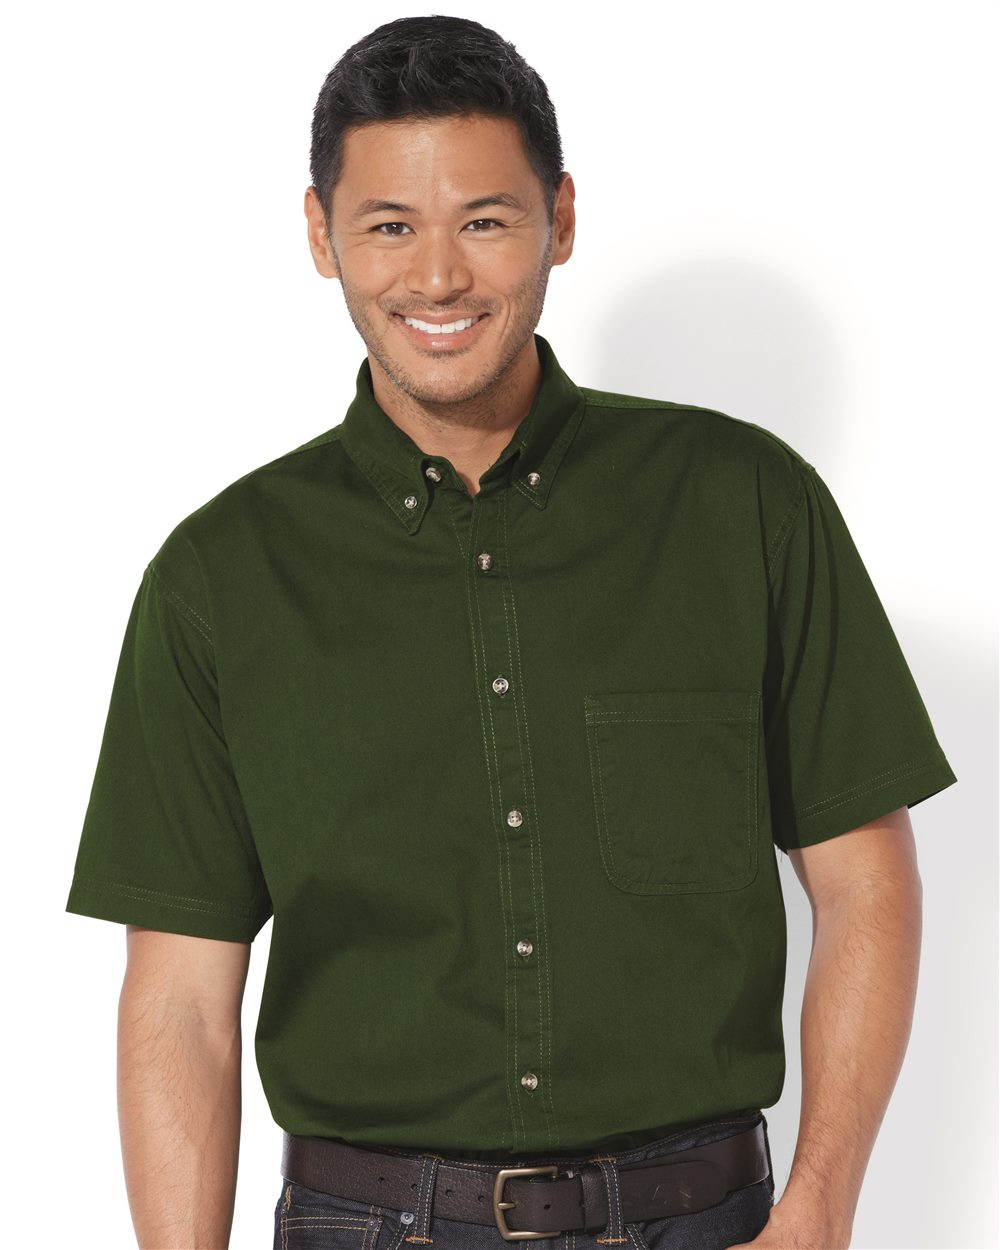 Sierra Pacific 0201 Short Sleeve Cotton Twill